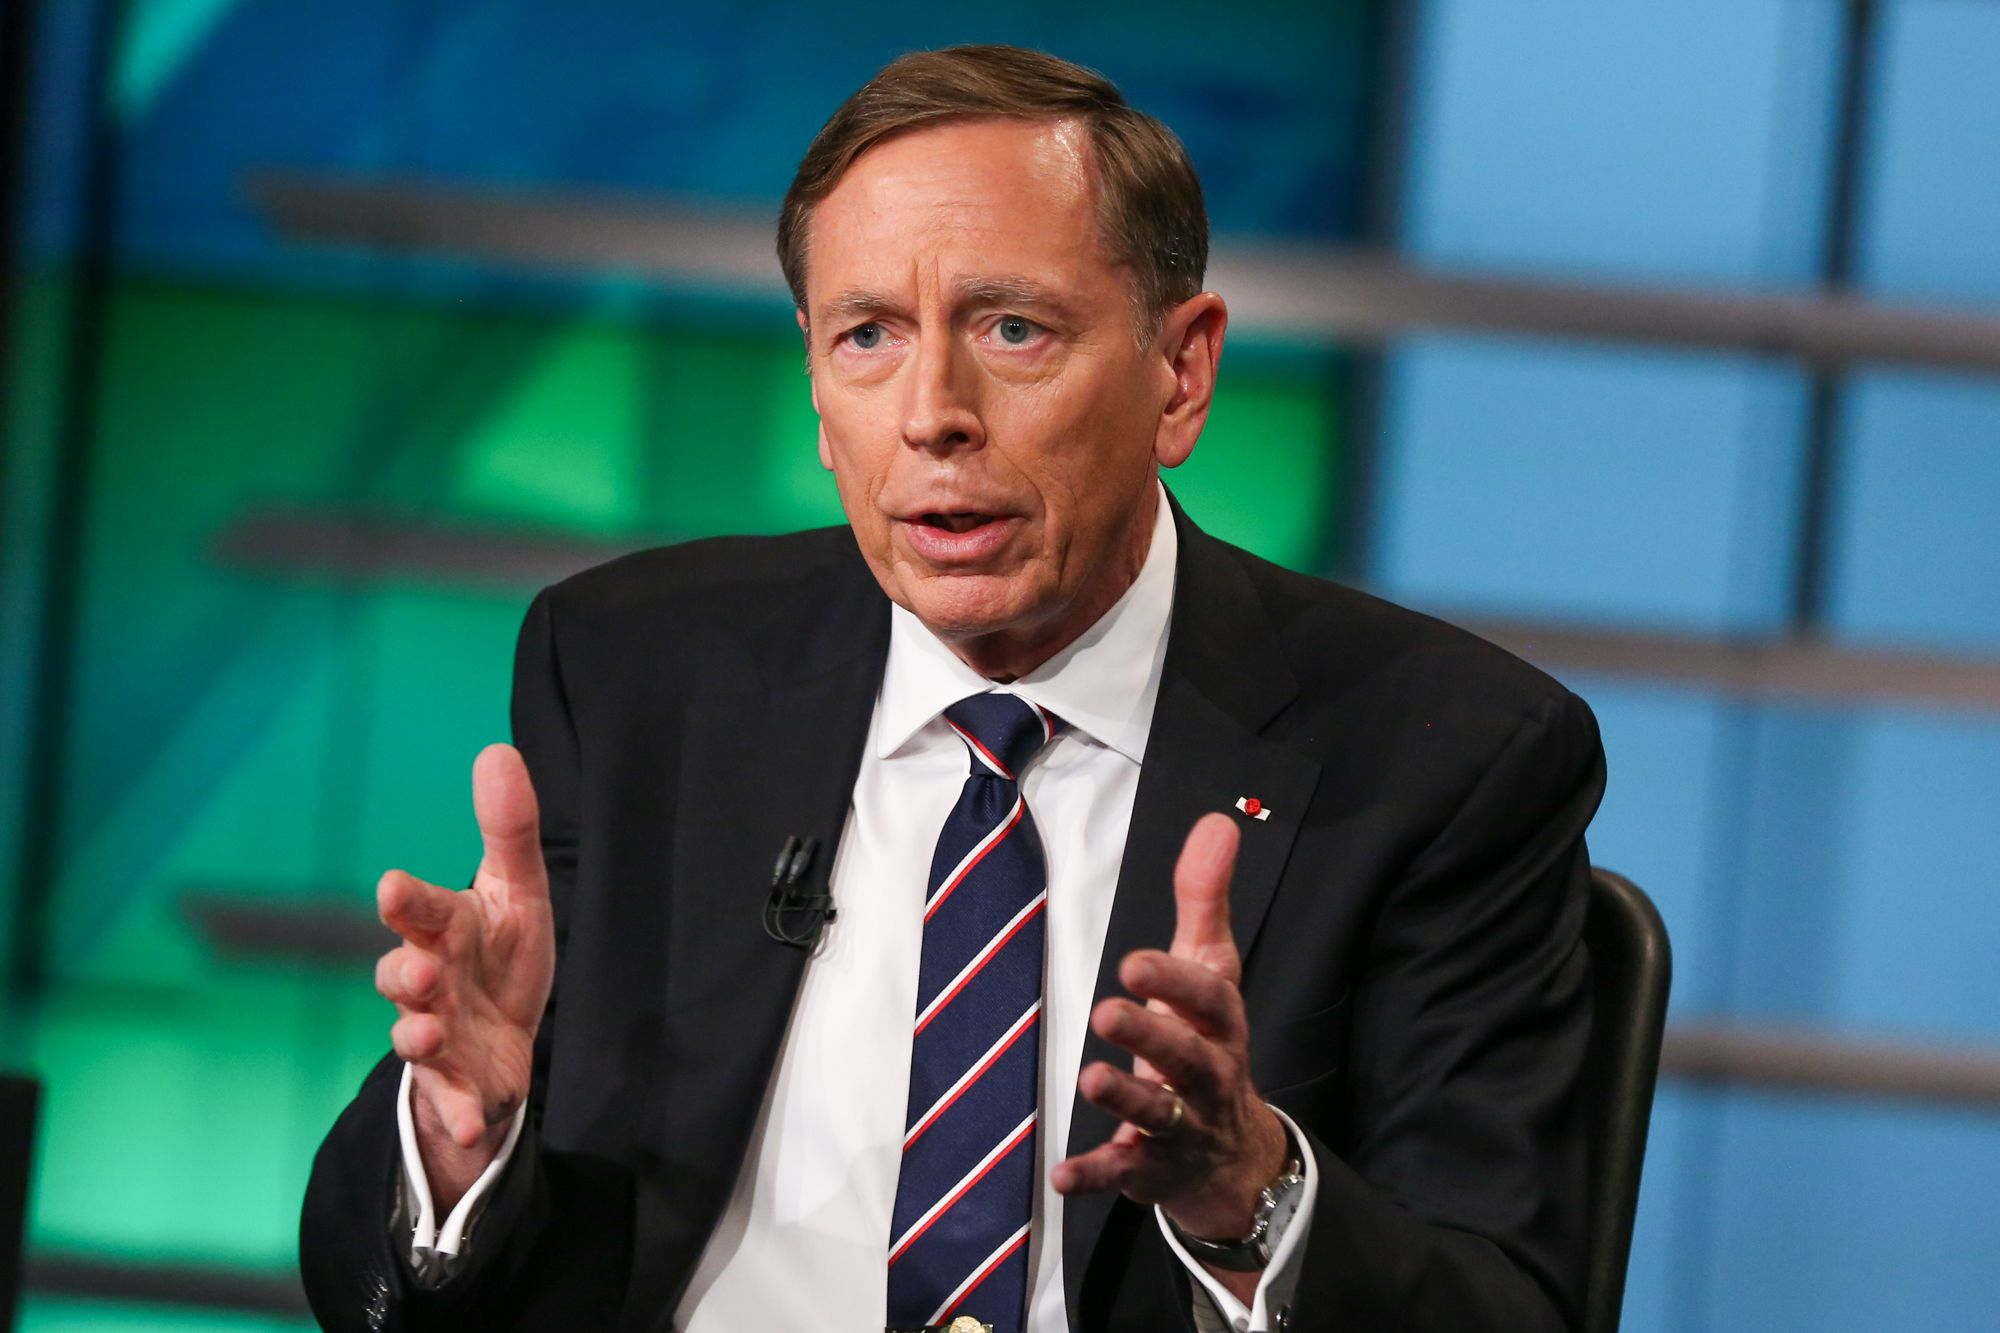 David Petraeus warns about Iran situation, says Trump policy not clear